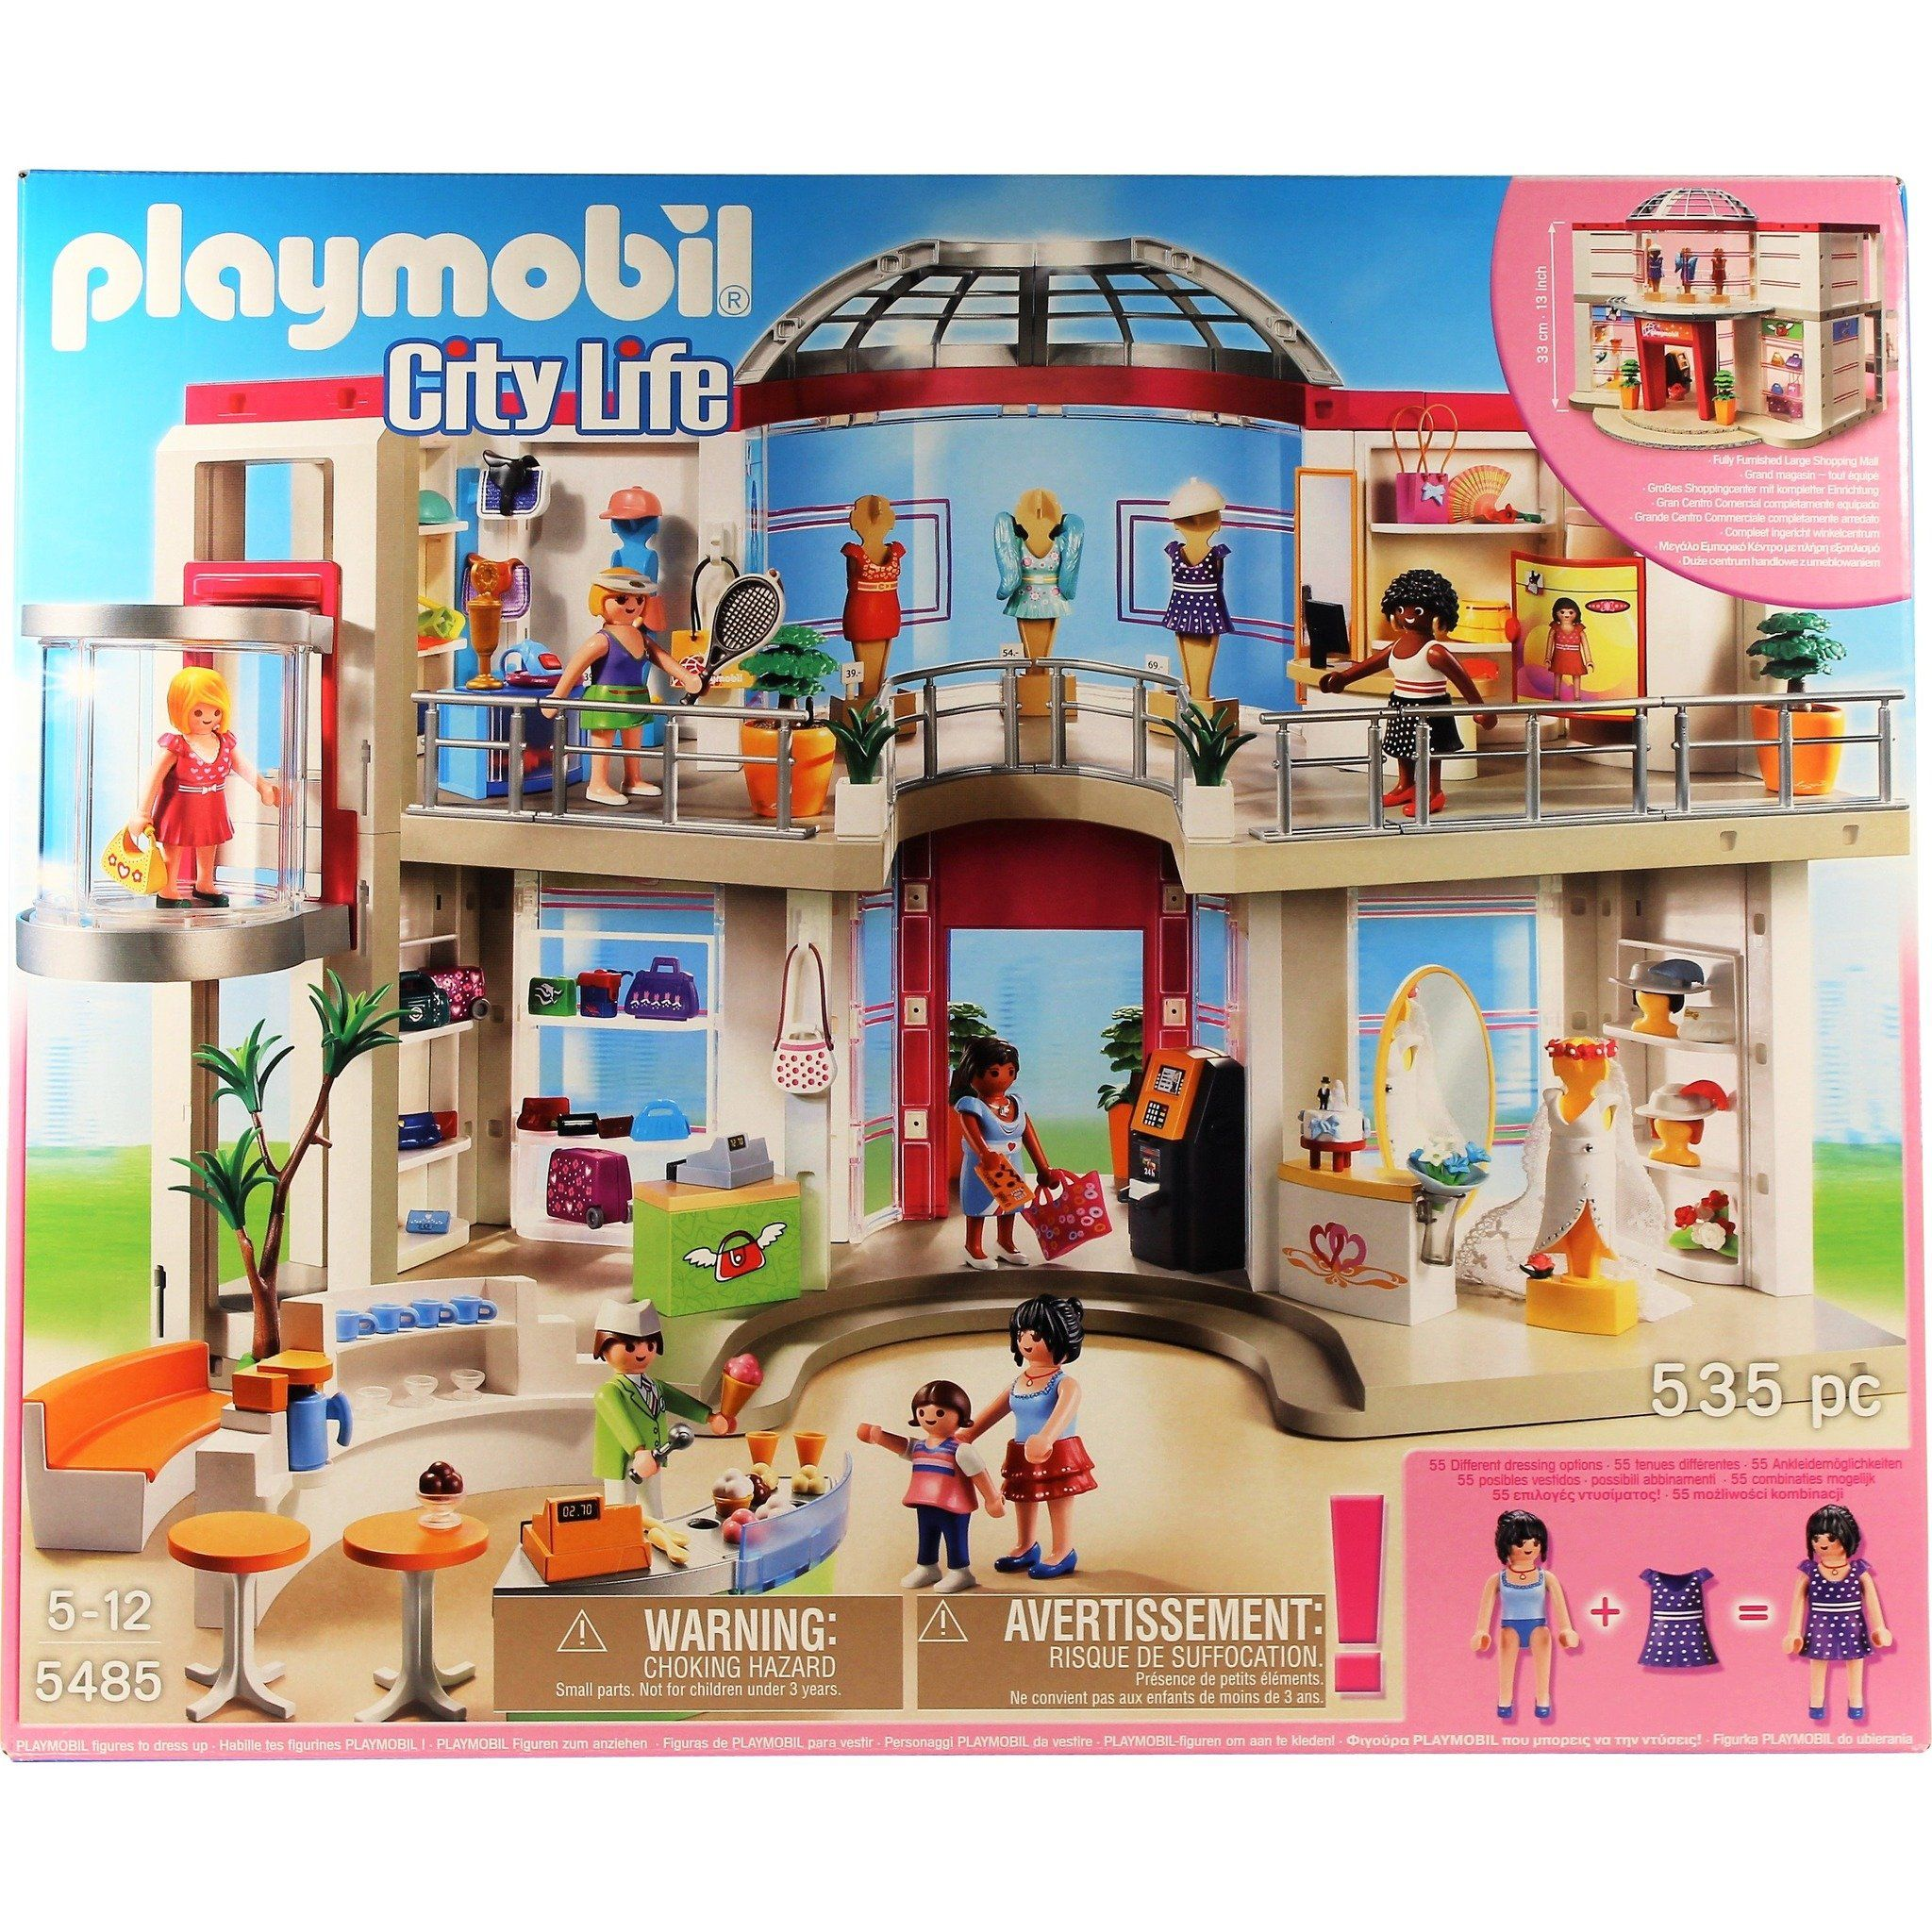 Playmobil 9266 City Life Modern House with Working Doorbell